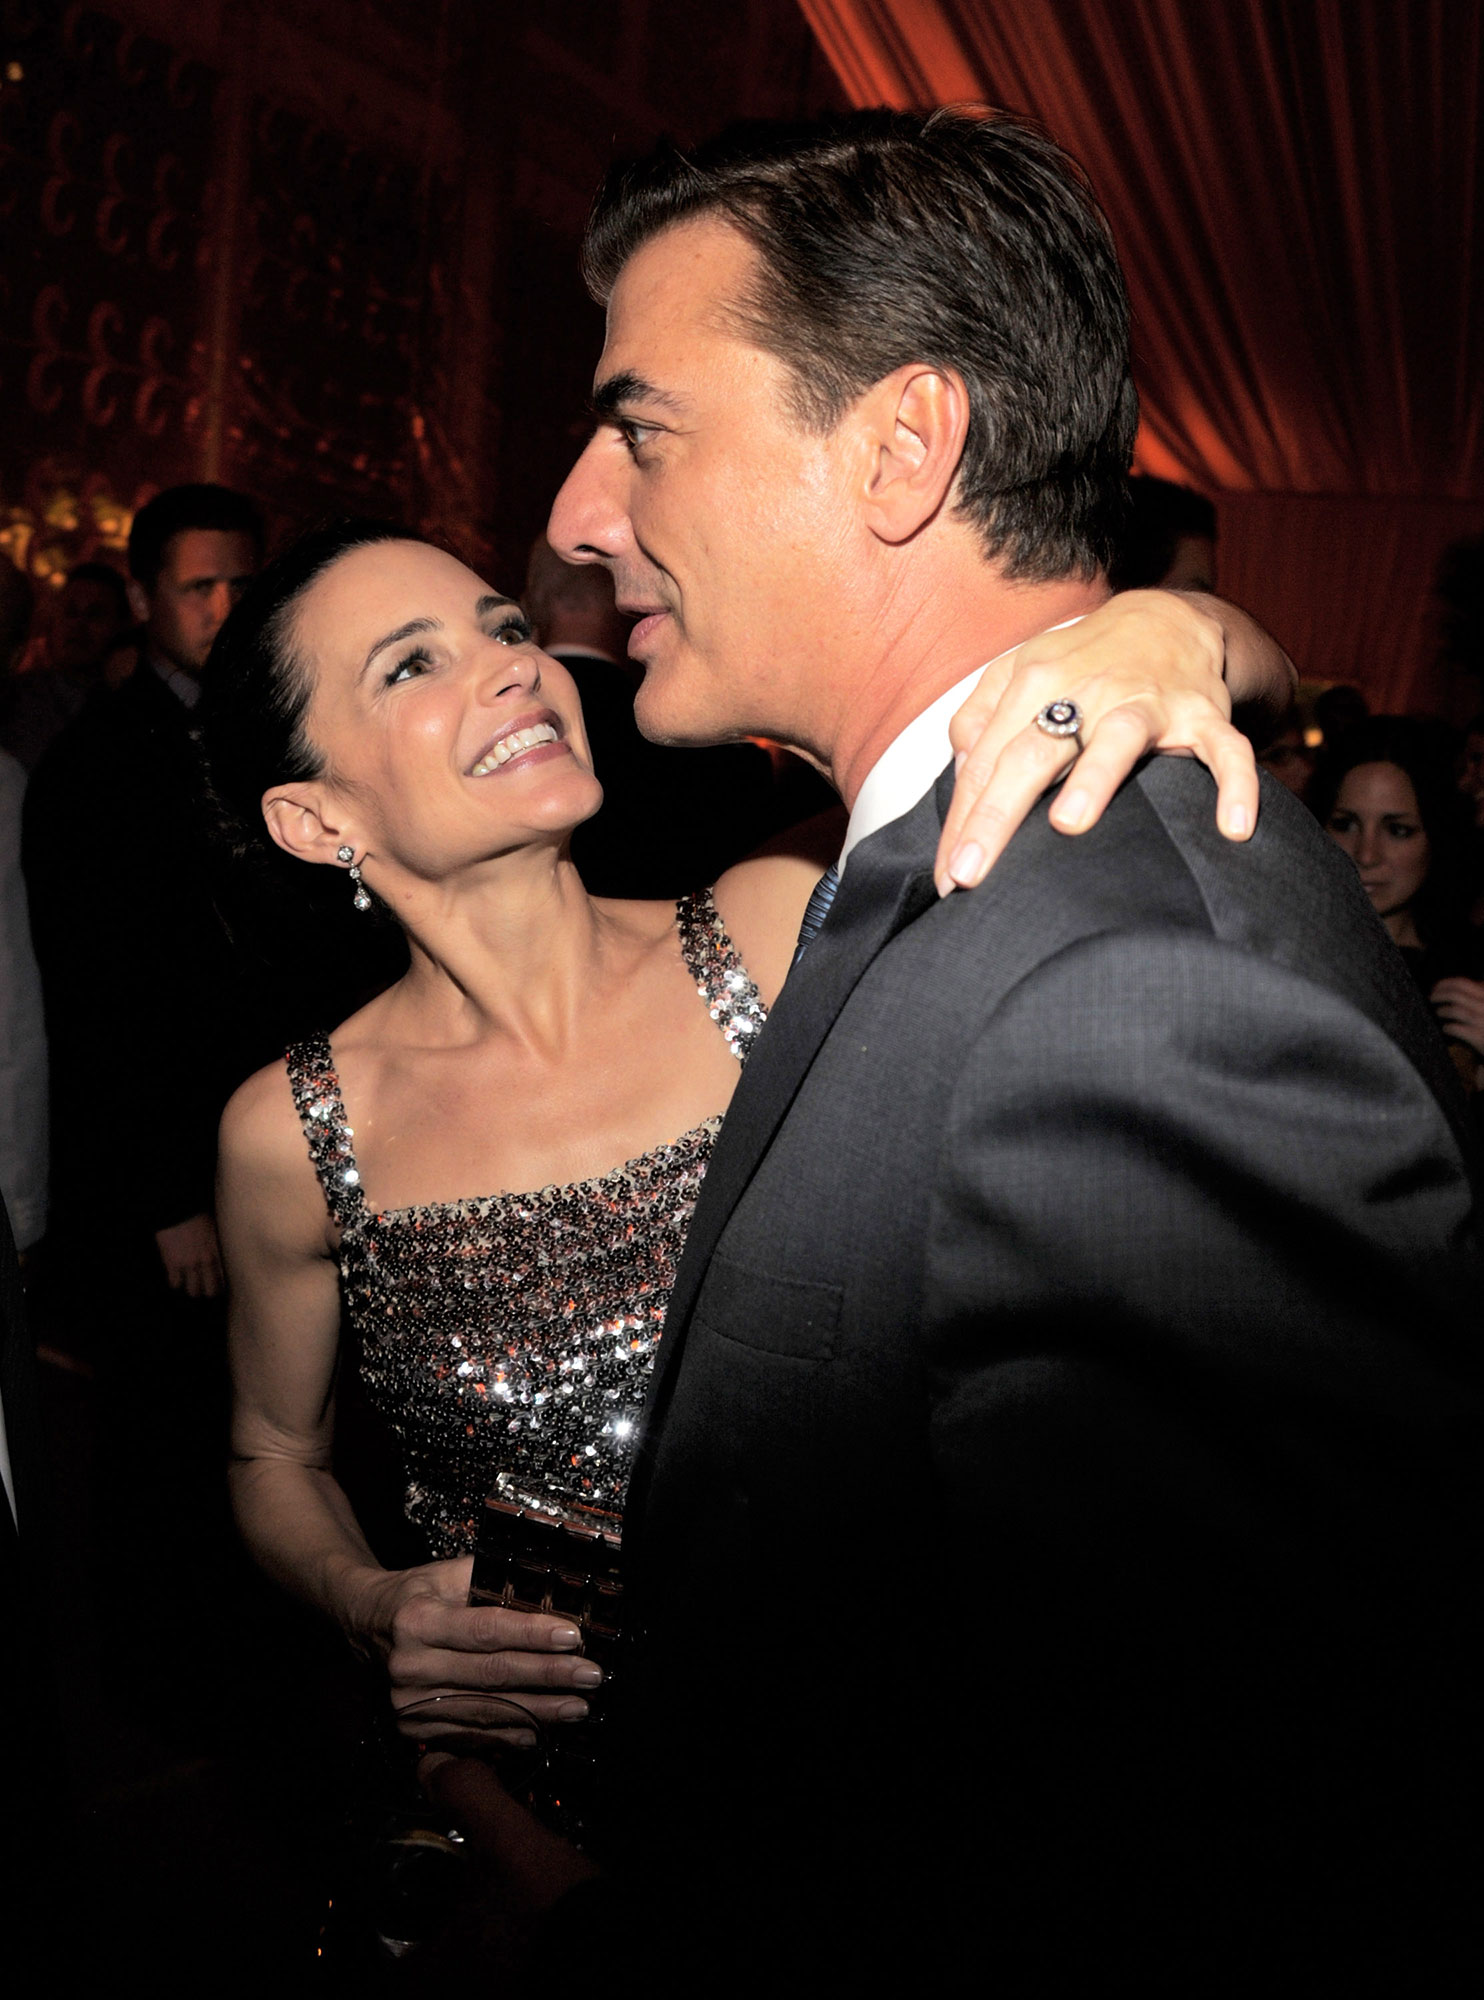 """Kristin Davis and Chris Noth - Kristin Davis and Chris Noth attends the after party for the premiere of """"Sex and the City 2"""" at Lincoln Center for the Performing Arts on May 24, 2010 in New York City."""